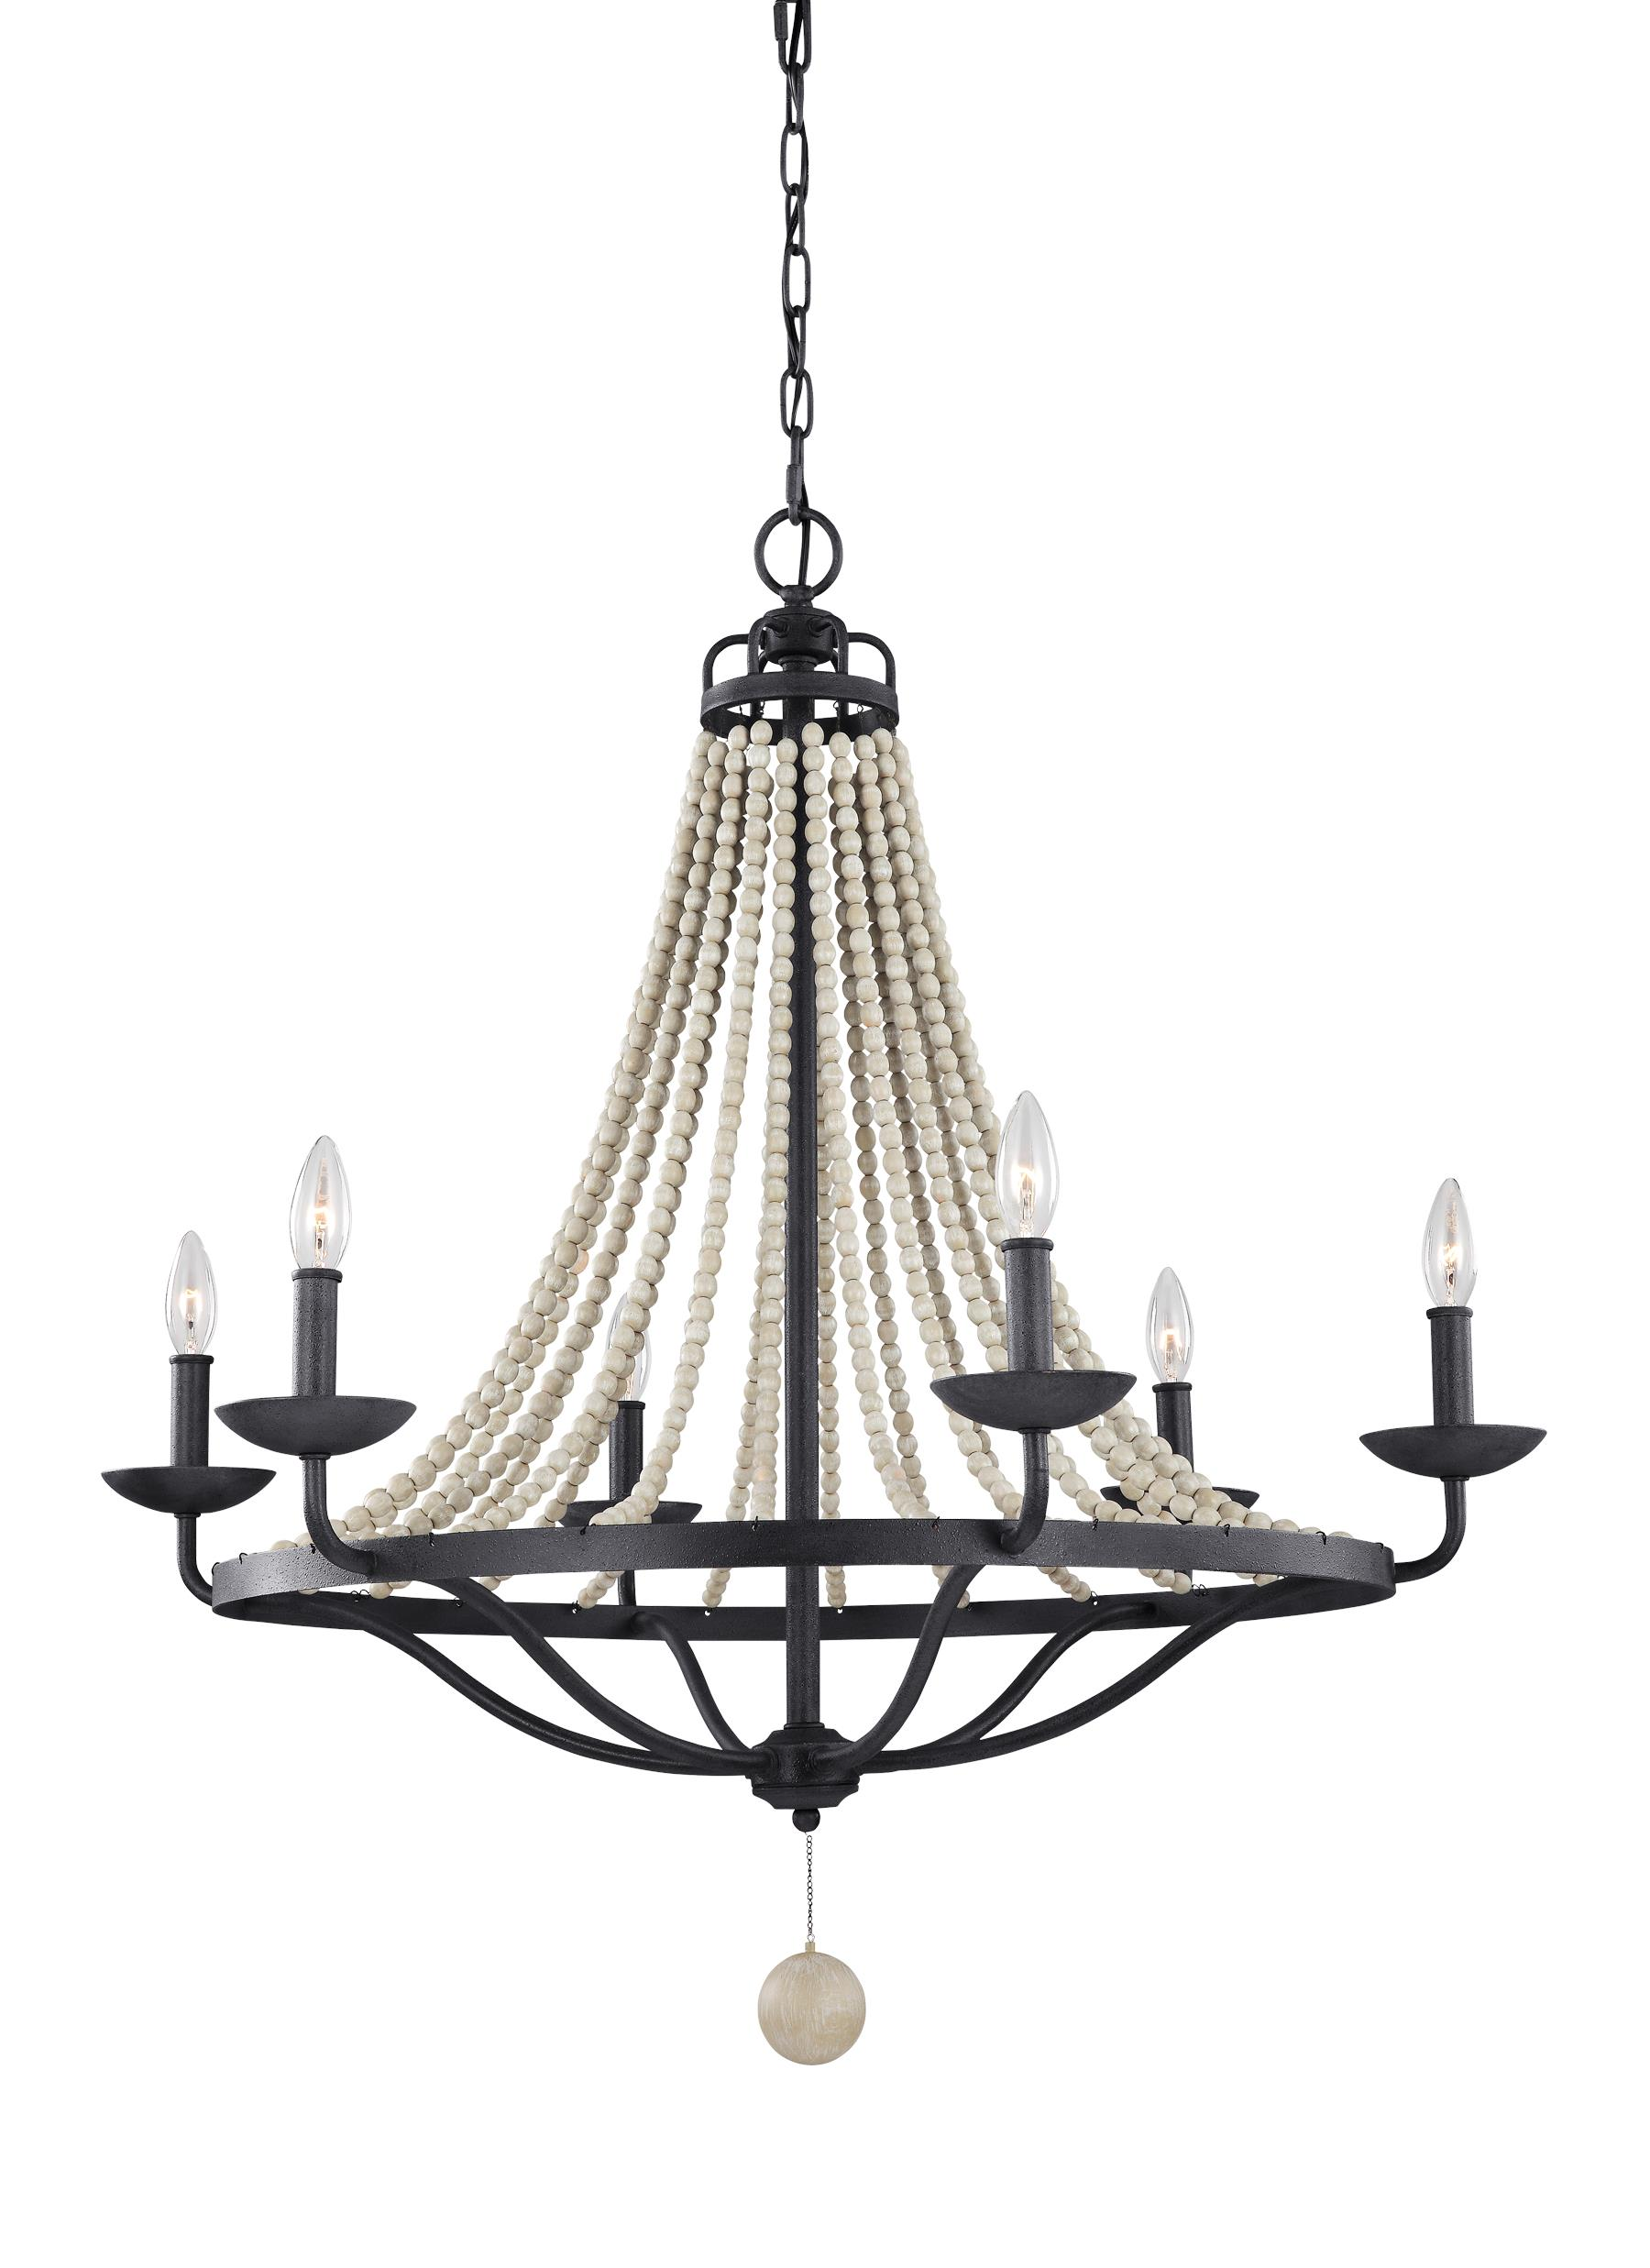 F31296dwzdwg6 light chandelierdark weathered zinc loading zoom arubaitofo Choice Image